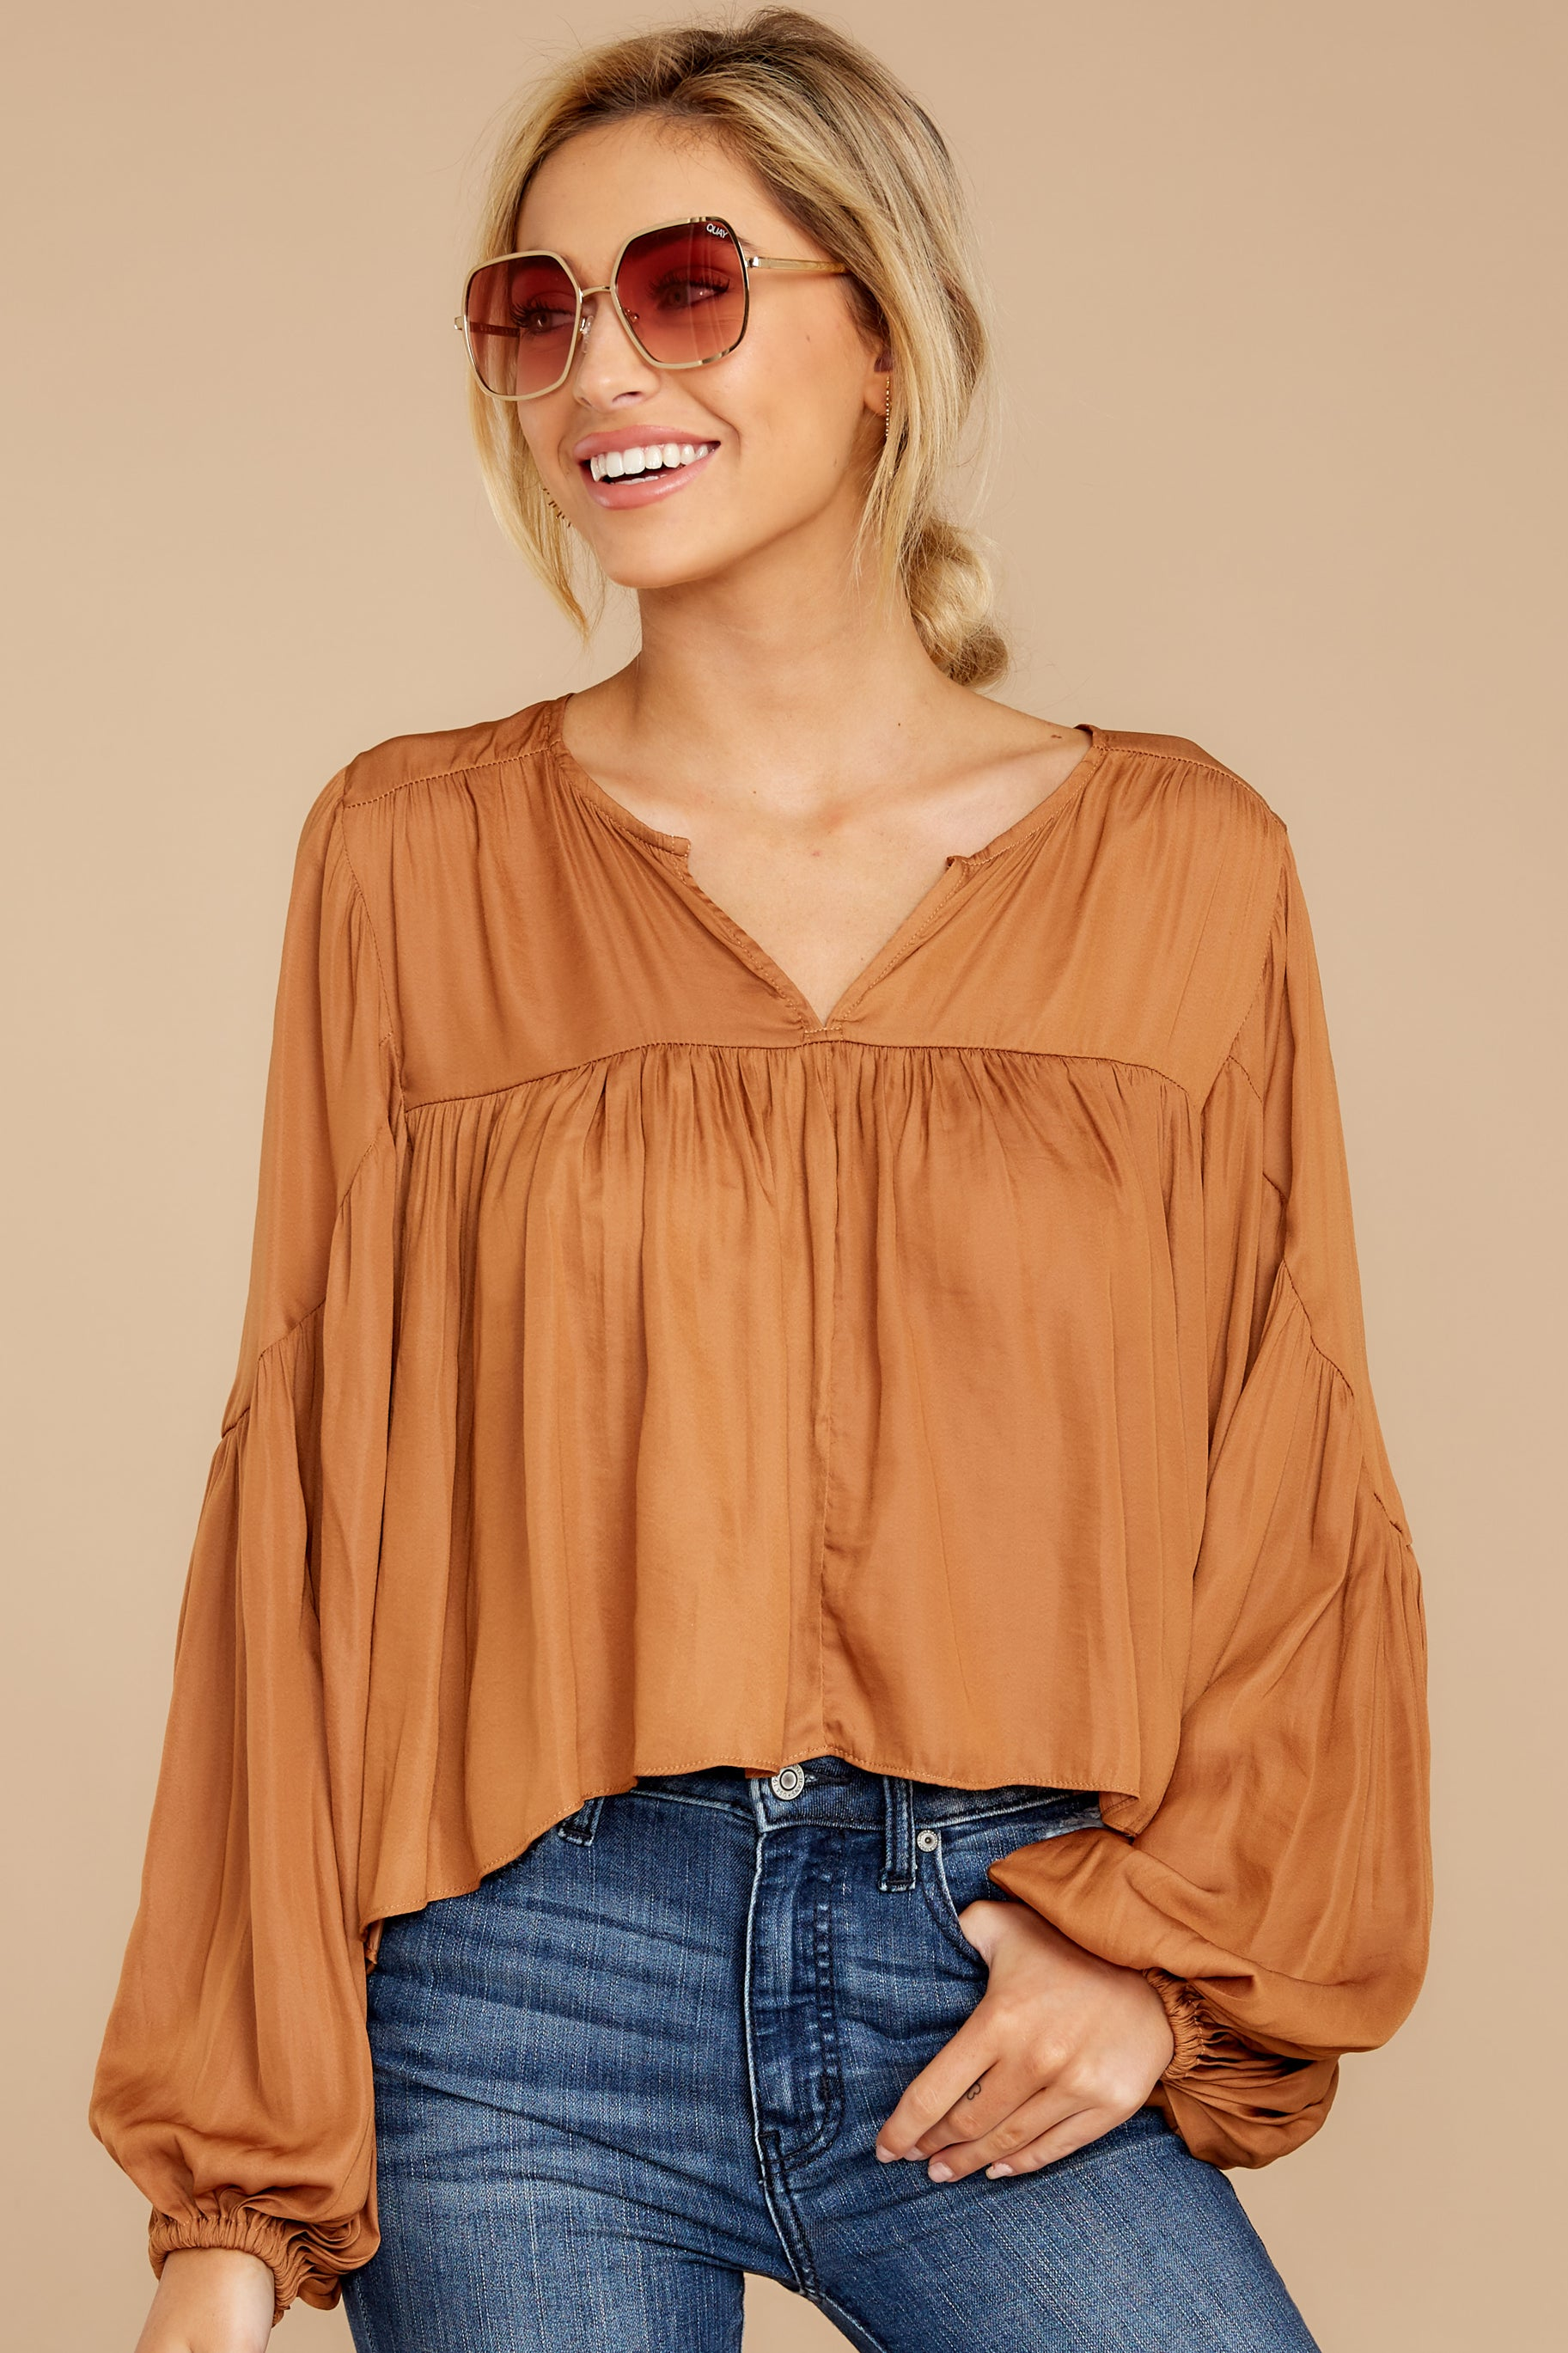 7 A Different Day Caramel Top at reddress.com